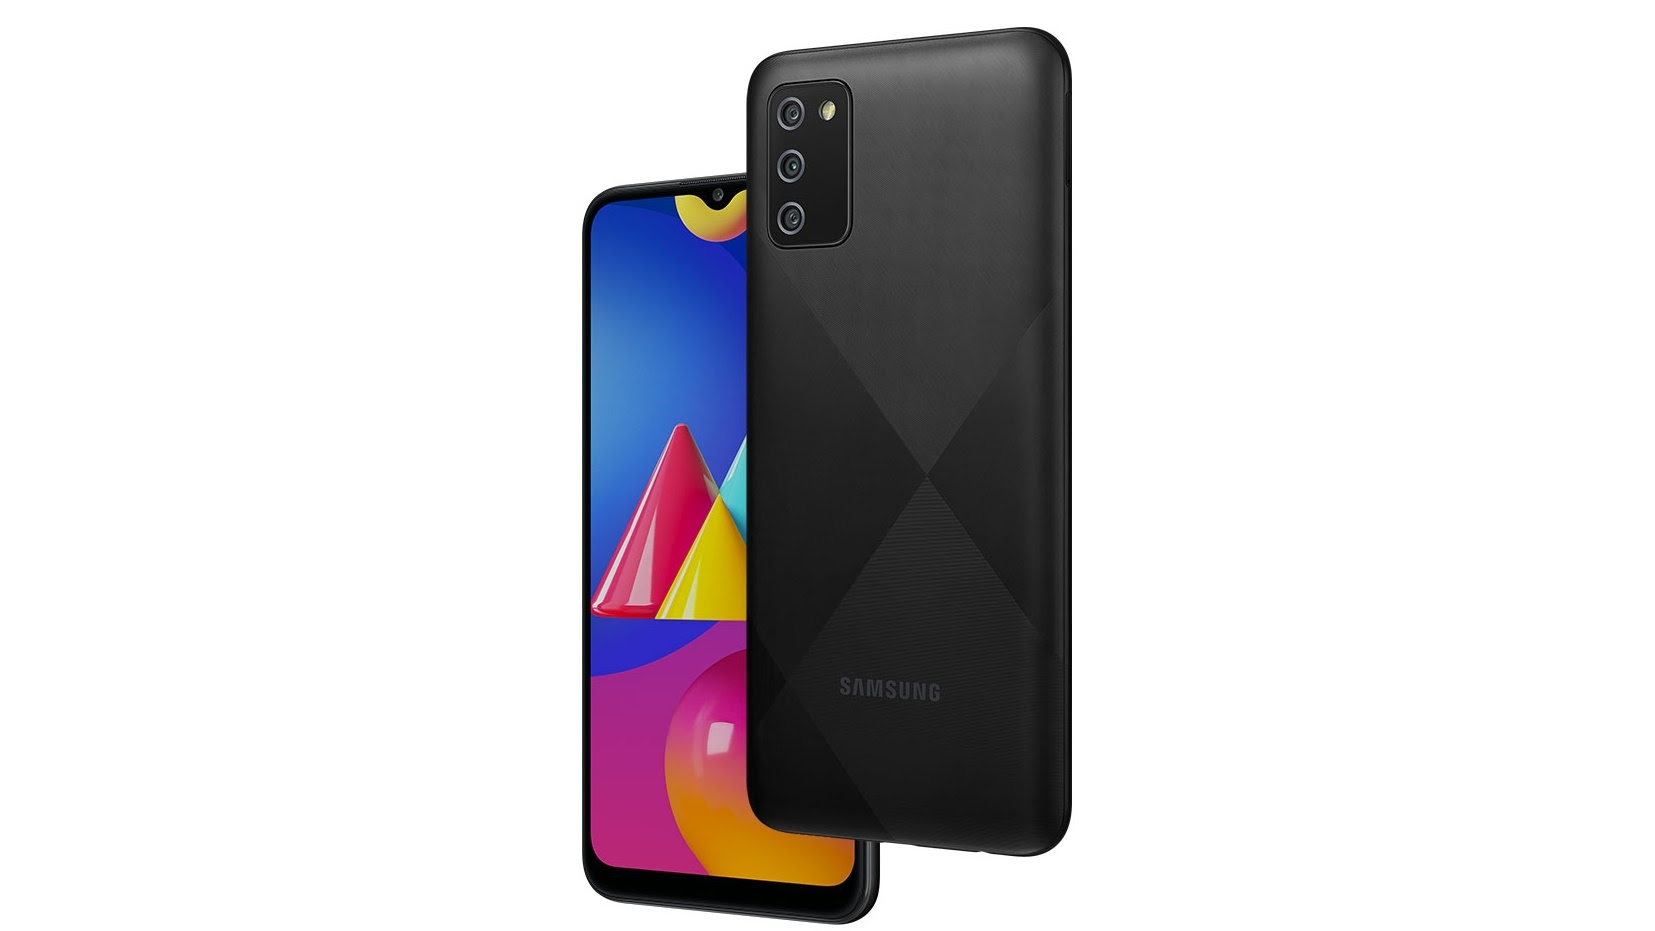 The Samsung Galaxy M02s runs Android 10 with Samsung's OneUI on top. Image: Samsung